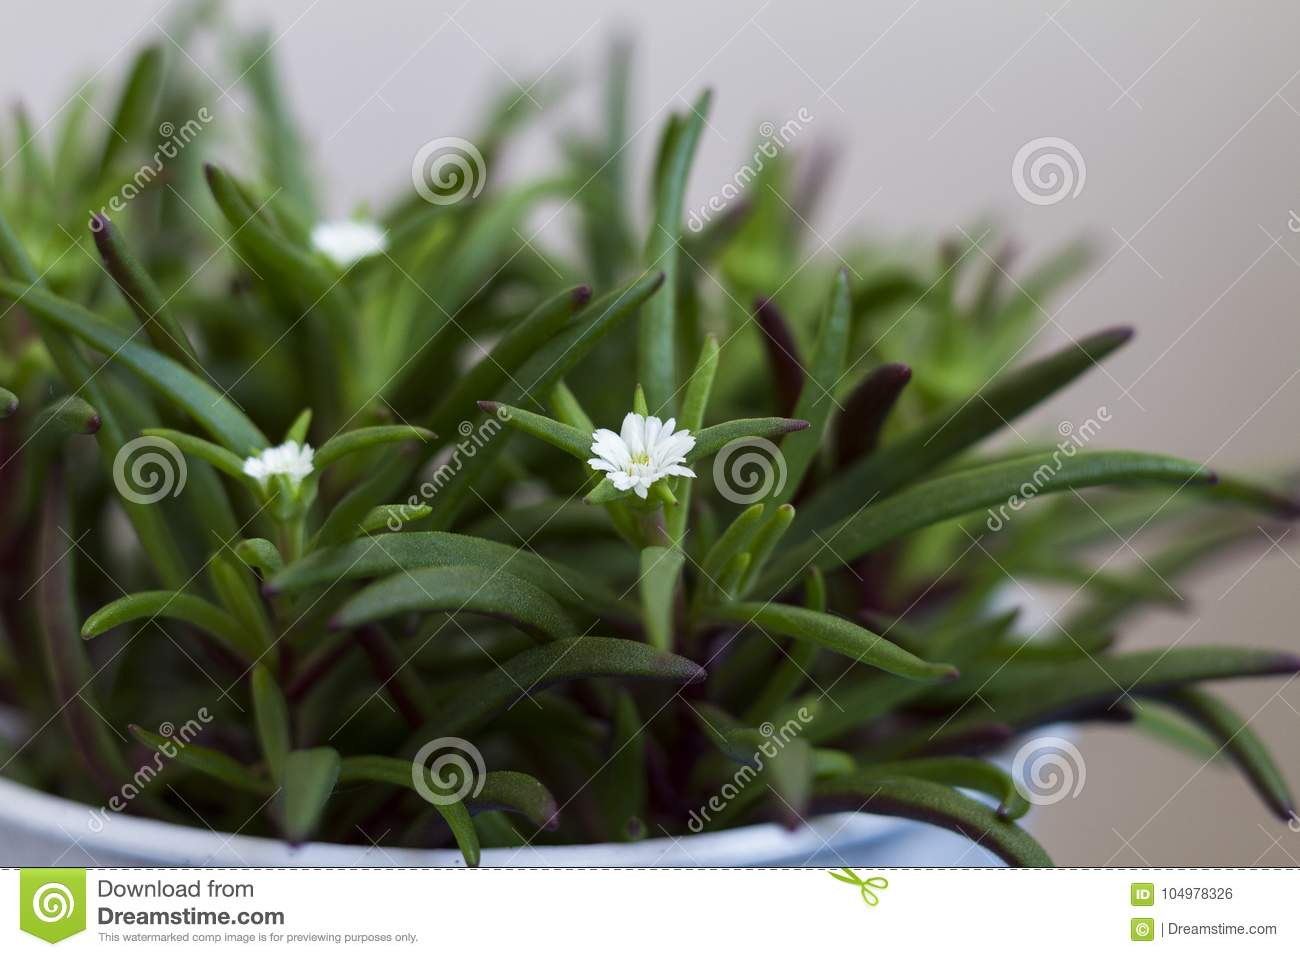 Green Plant With Small White Flowers In A Pot Close Up Stock Photo